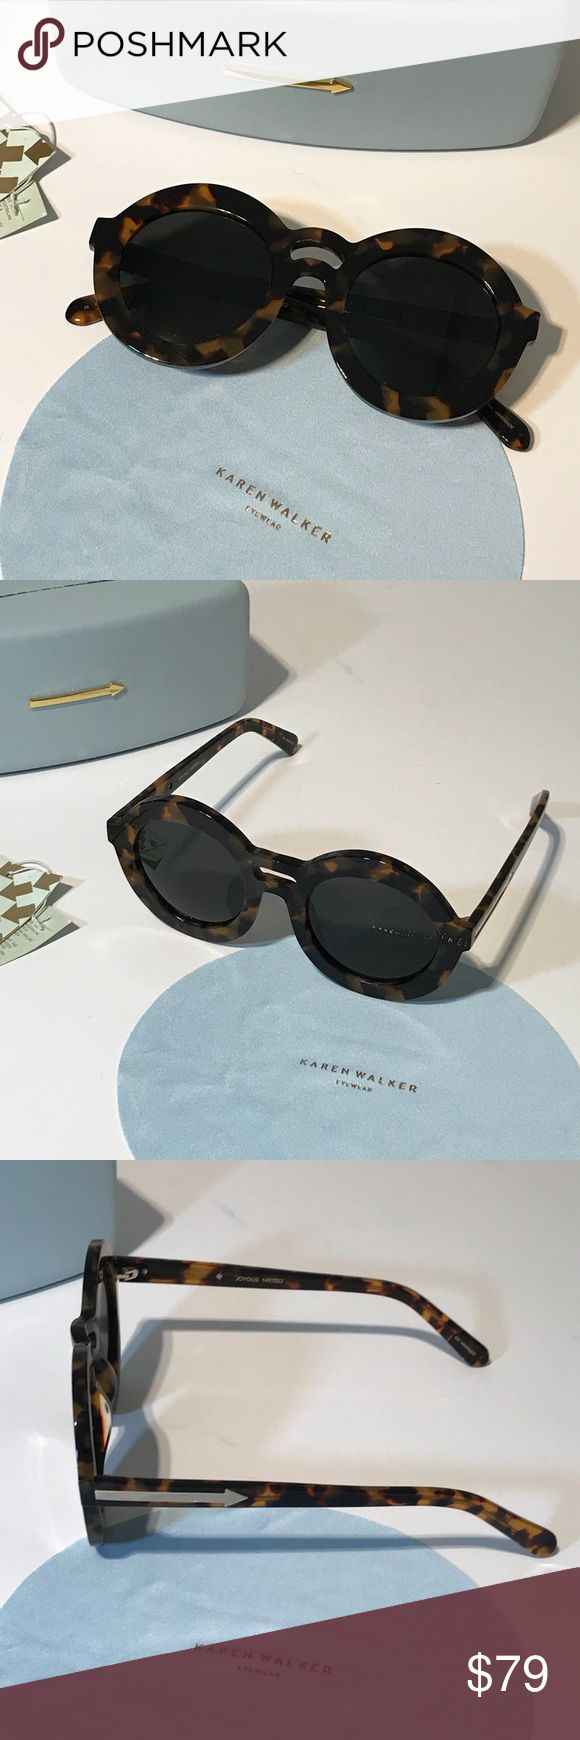 KAREN WALKER Joyous Tortoise Women's Sunglasses These gorgeous glasses feature round lenses and double ridge over nose. UV protection. Comes with cleaning cloth and carrying case. Gently used. Smoke free home. (CR) Karen Walker Accessories Sunglasses